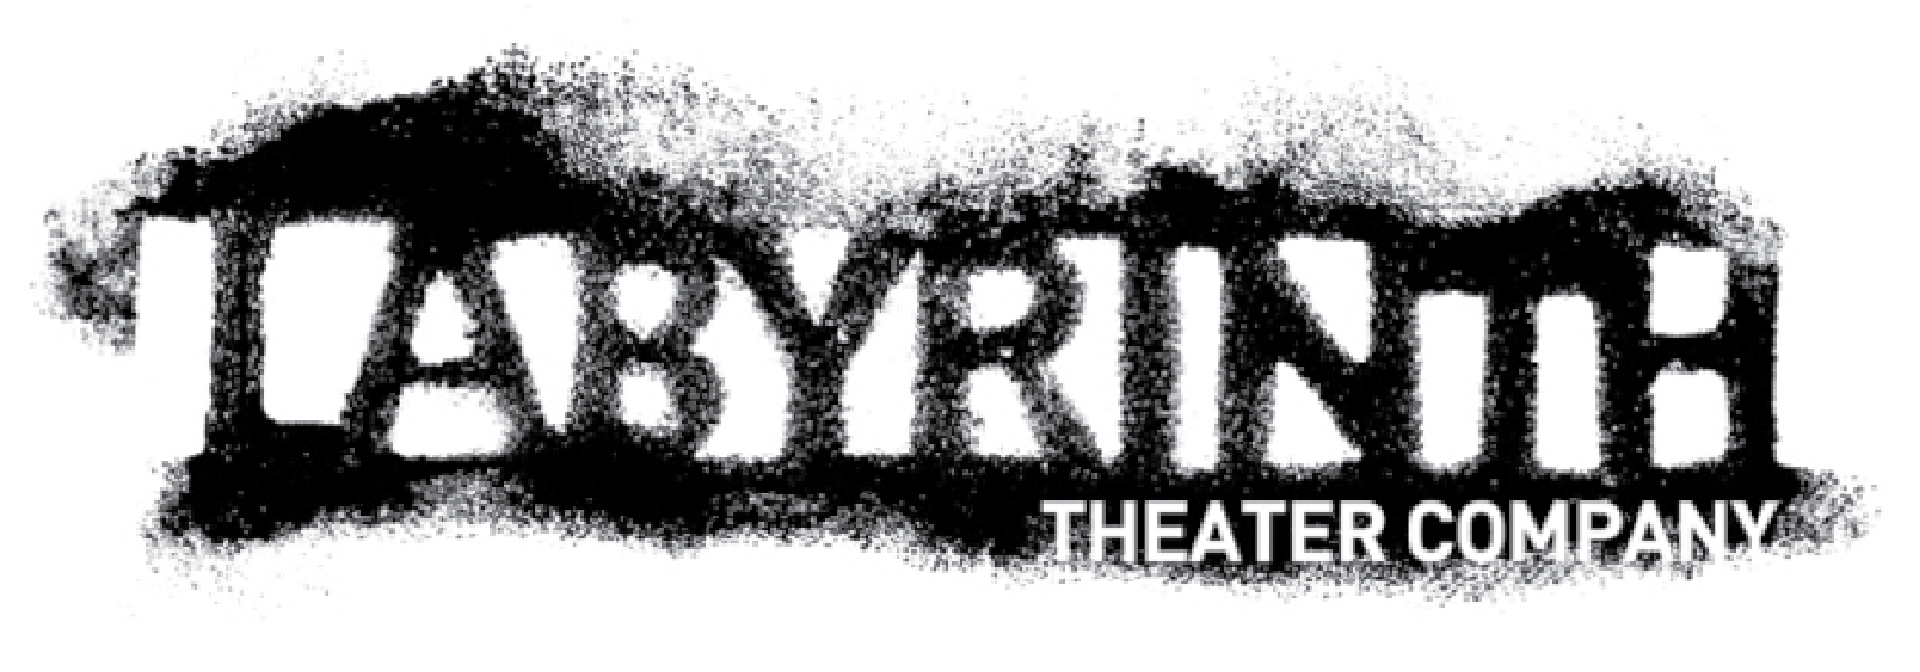 Labyrinth Theatre Company